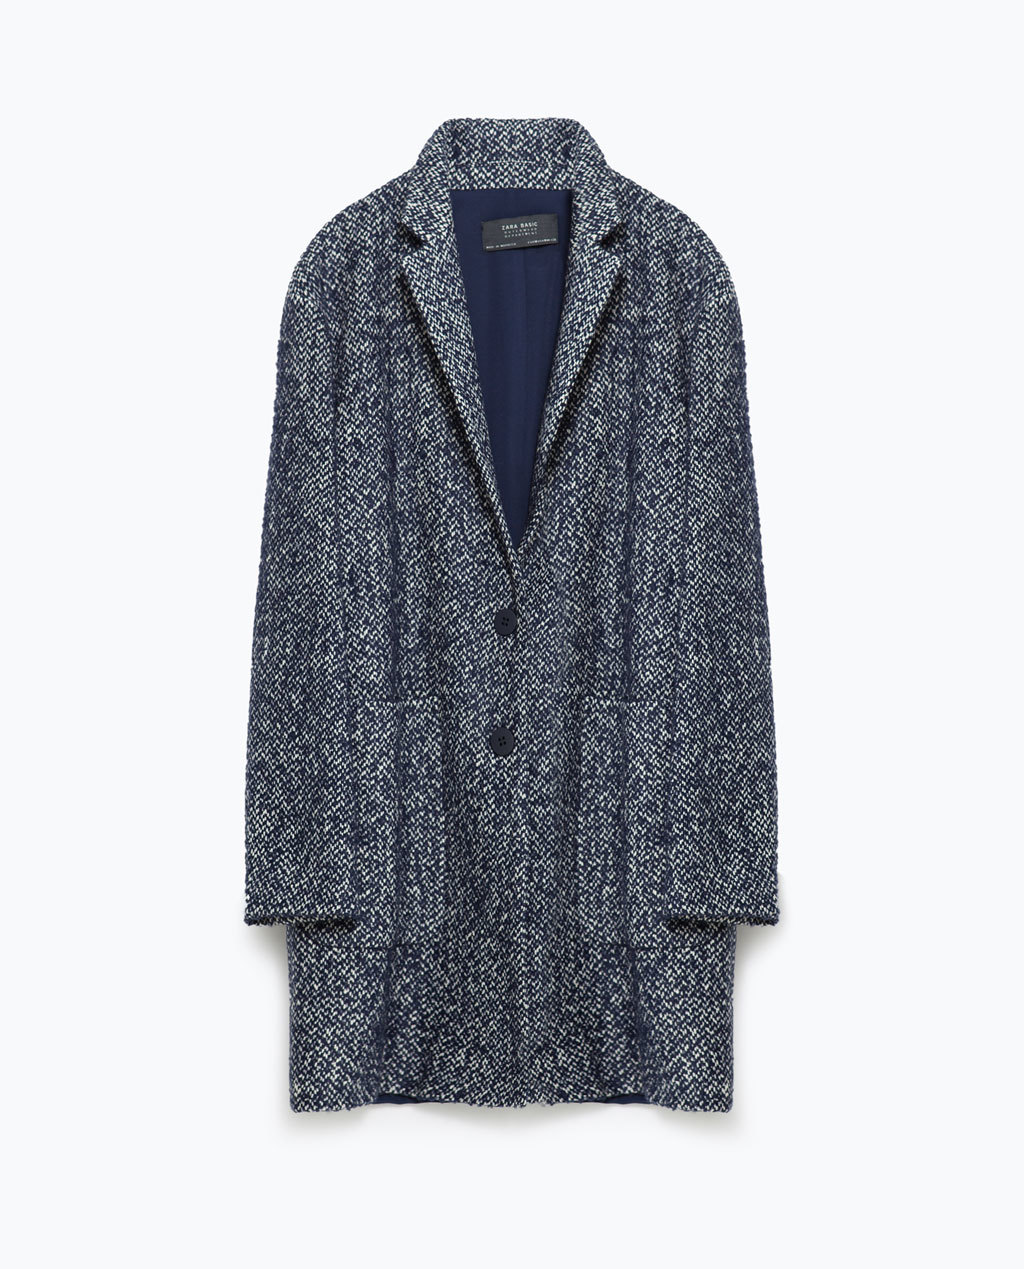 Wool Coat - fit: loose; collar: standard lapel/rever collar; pattern: herringbone/tweed; length: mid thigh; secondary colour: white; predominant colour: navy; occasions: casual, creative work; style: cocoon; fibres: wool - 100%; sleeve length: long sleeve; sleeve style: standard; collar break: medium; pattern type: fabric; pattern size: standard; texture group: tweed - bulky/heavy; season: a/w 2015